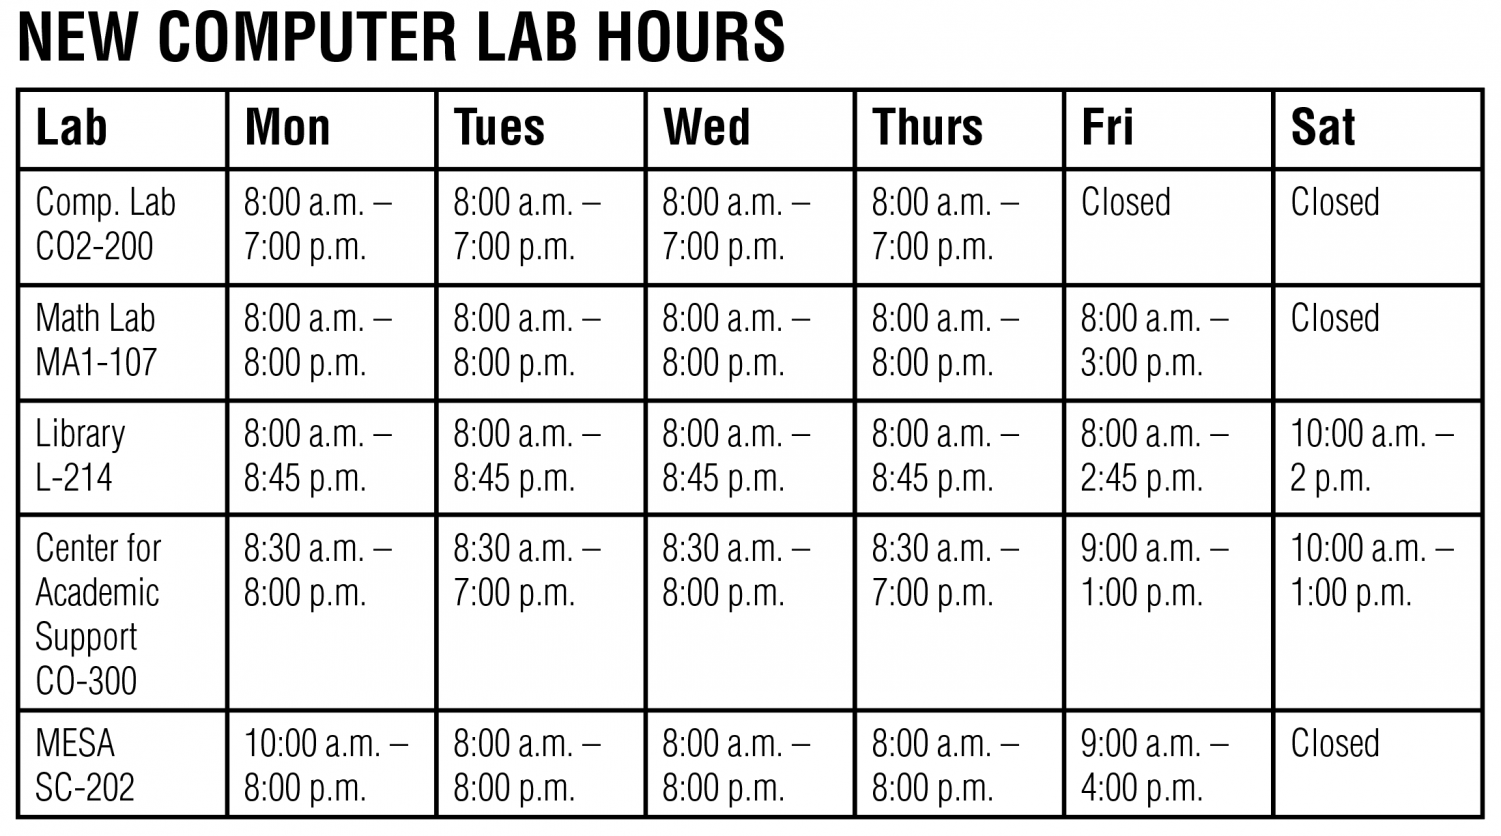 Edited graph depicting correct lab hours for all computer labs on campus.